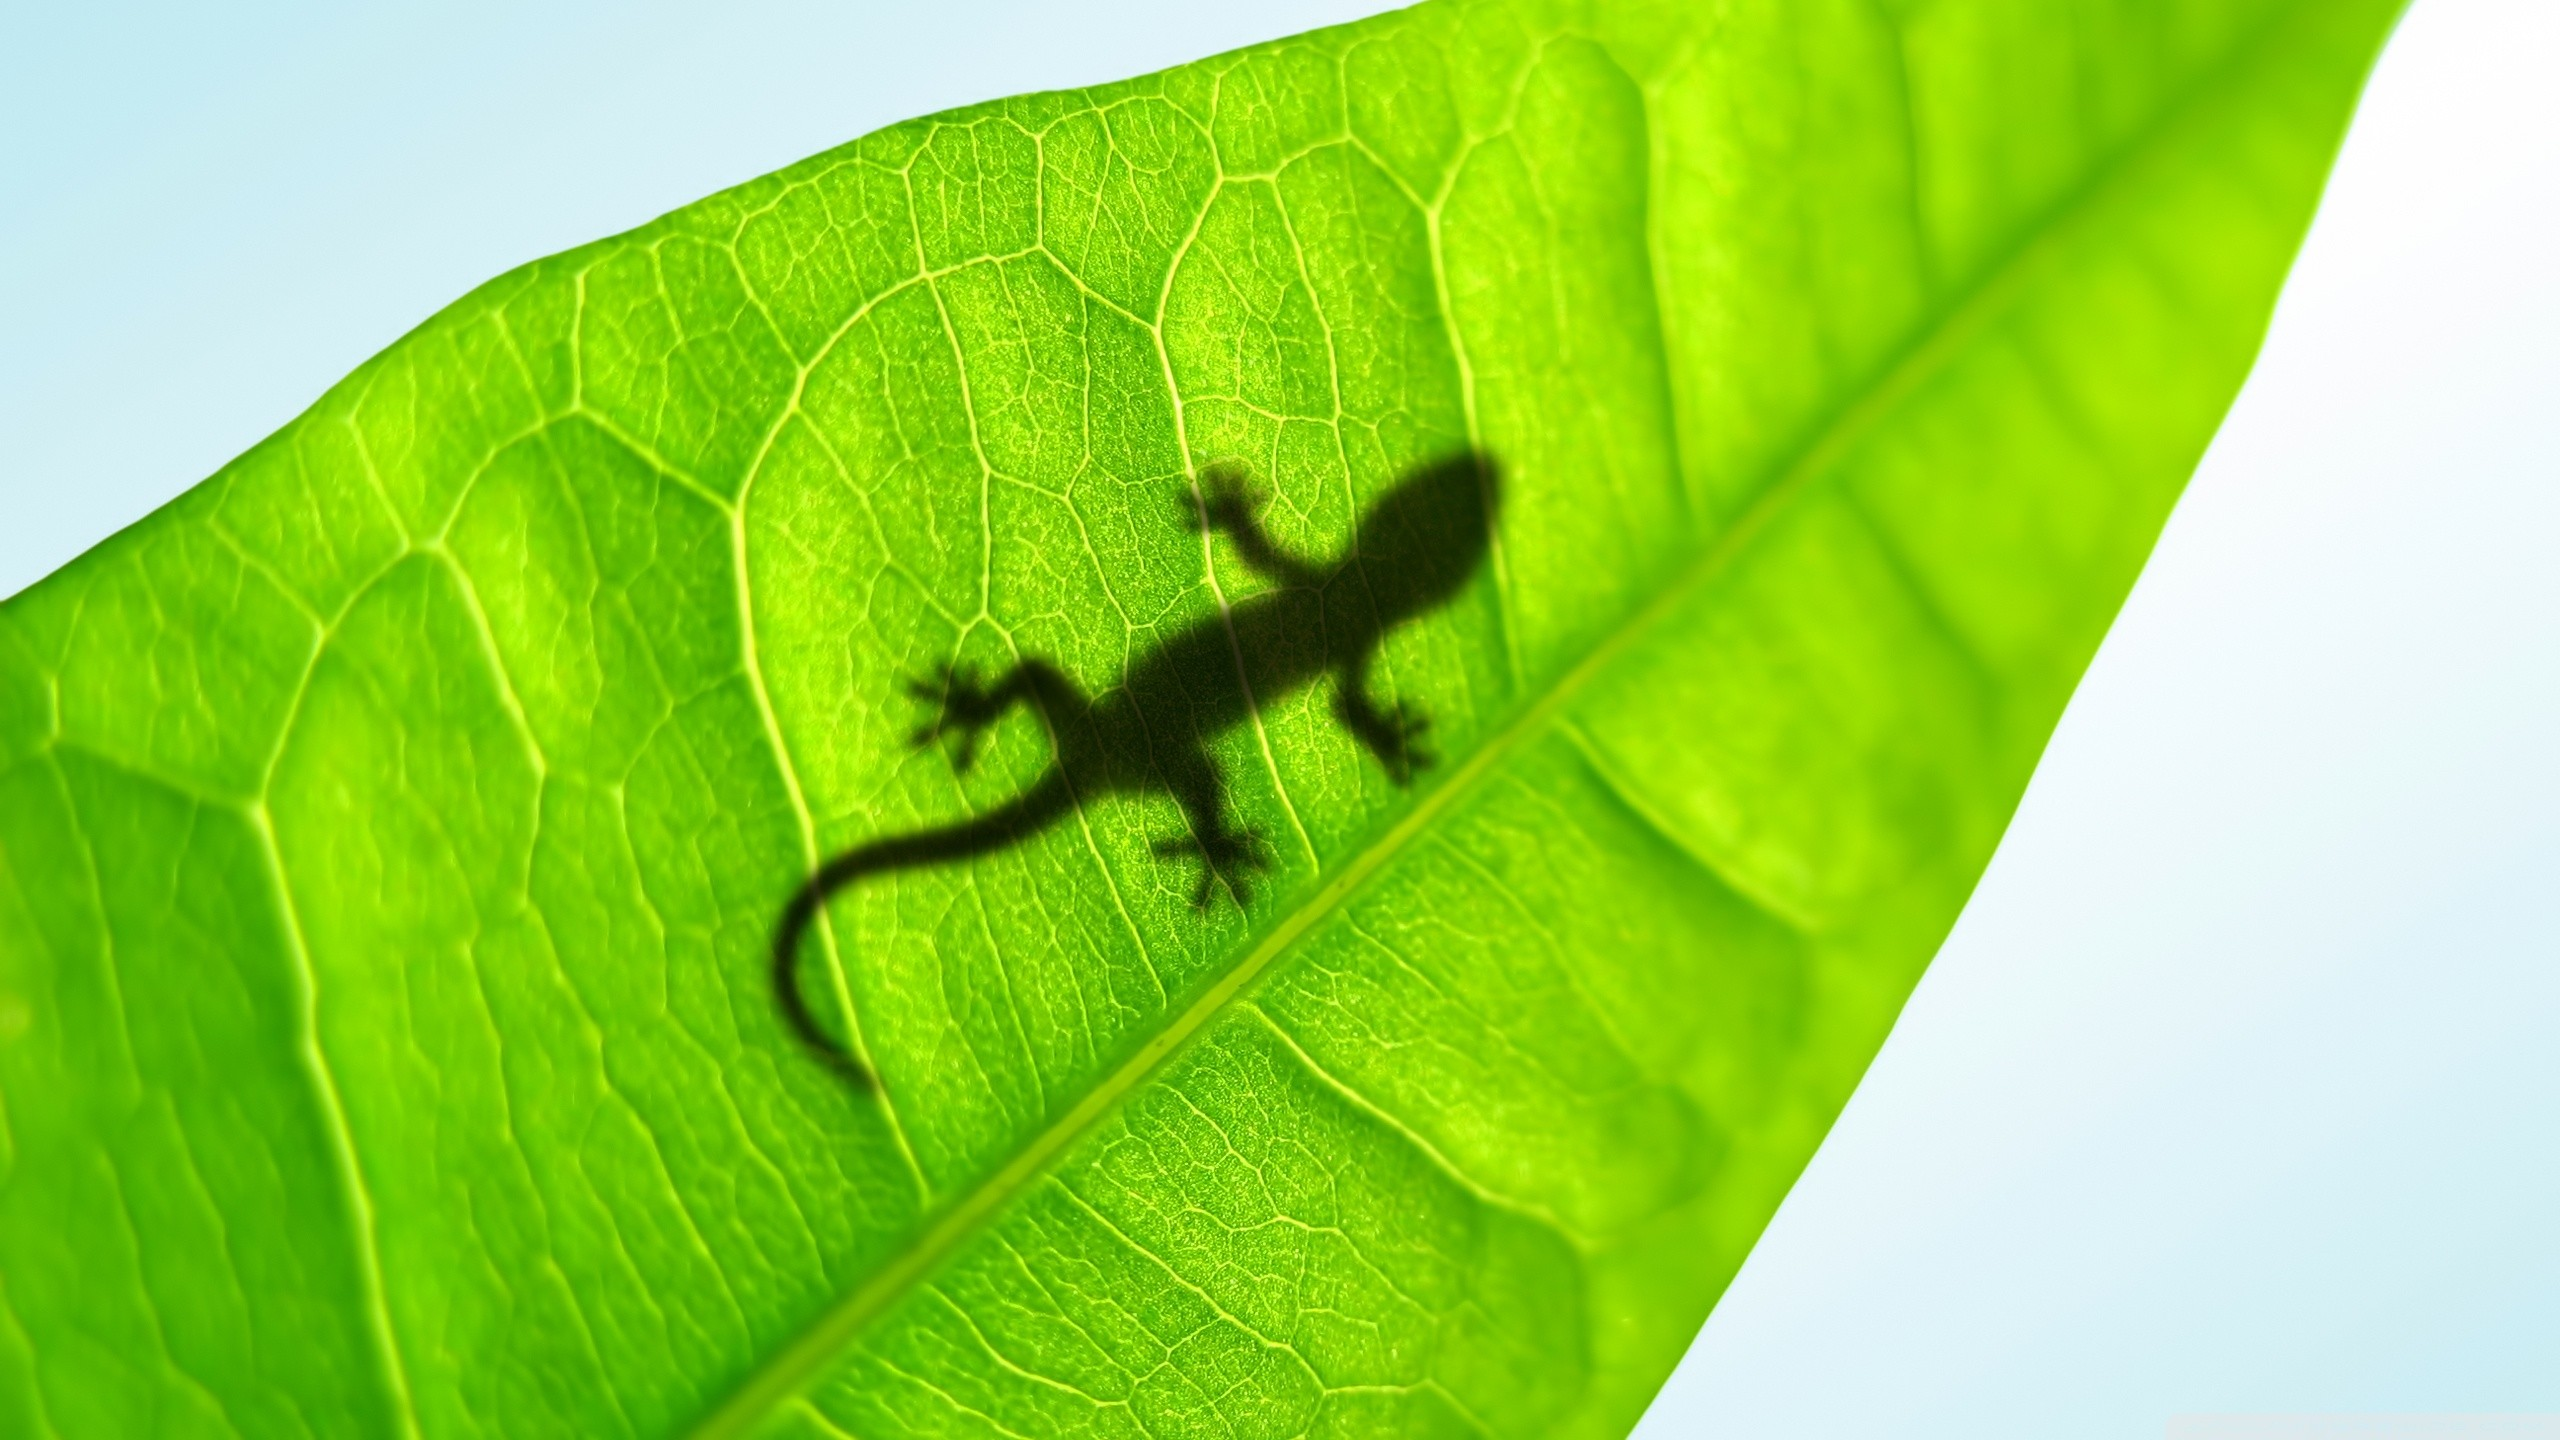 Gecko Wallpapers ·①